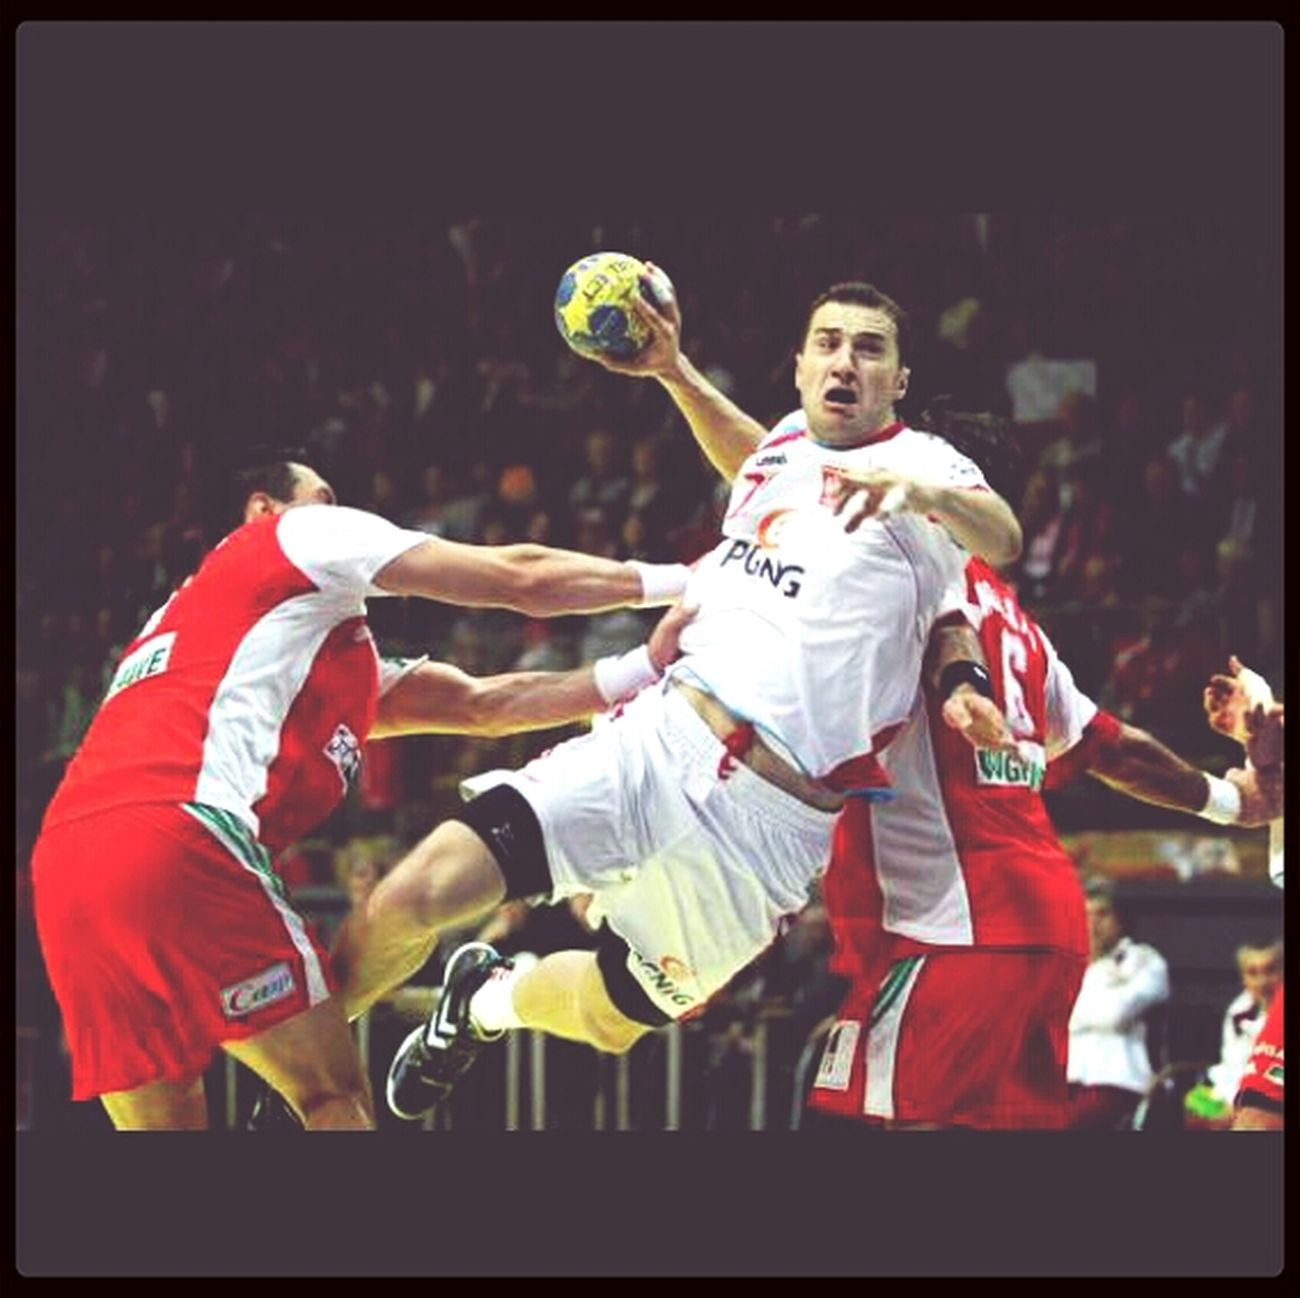 Handbal Player Sport Love #poland